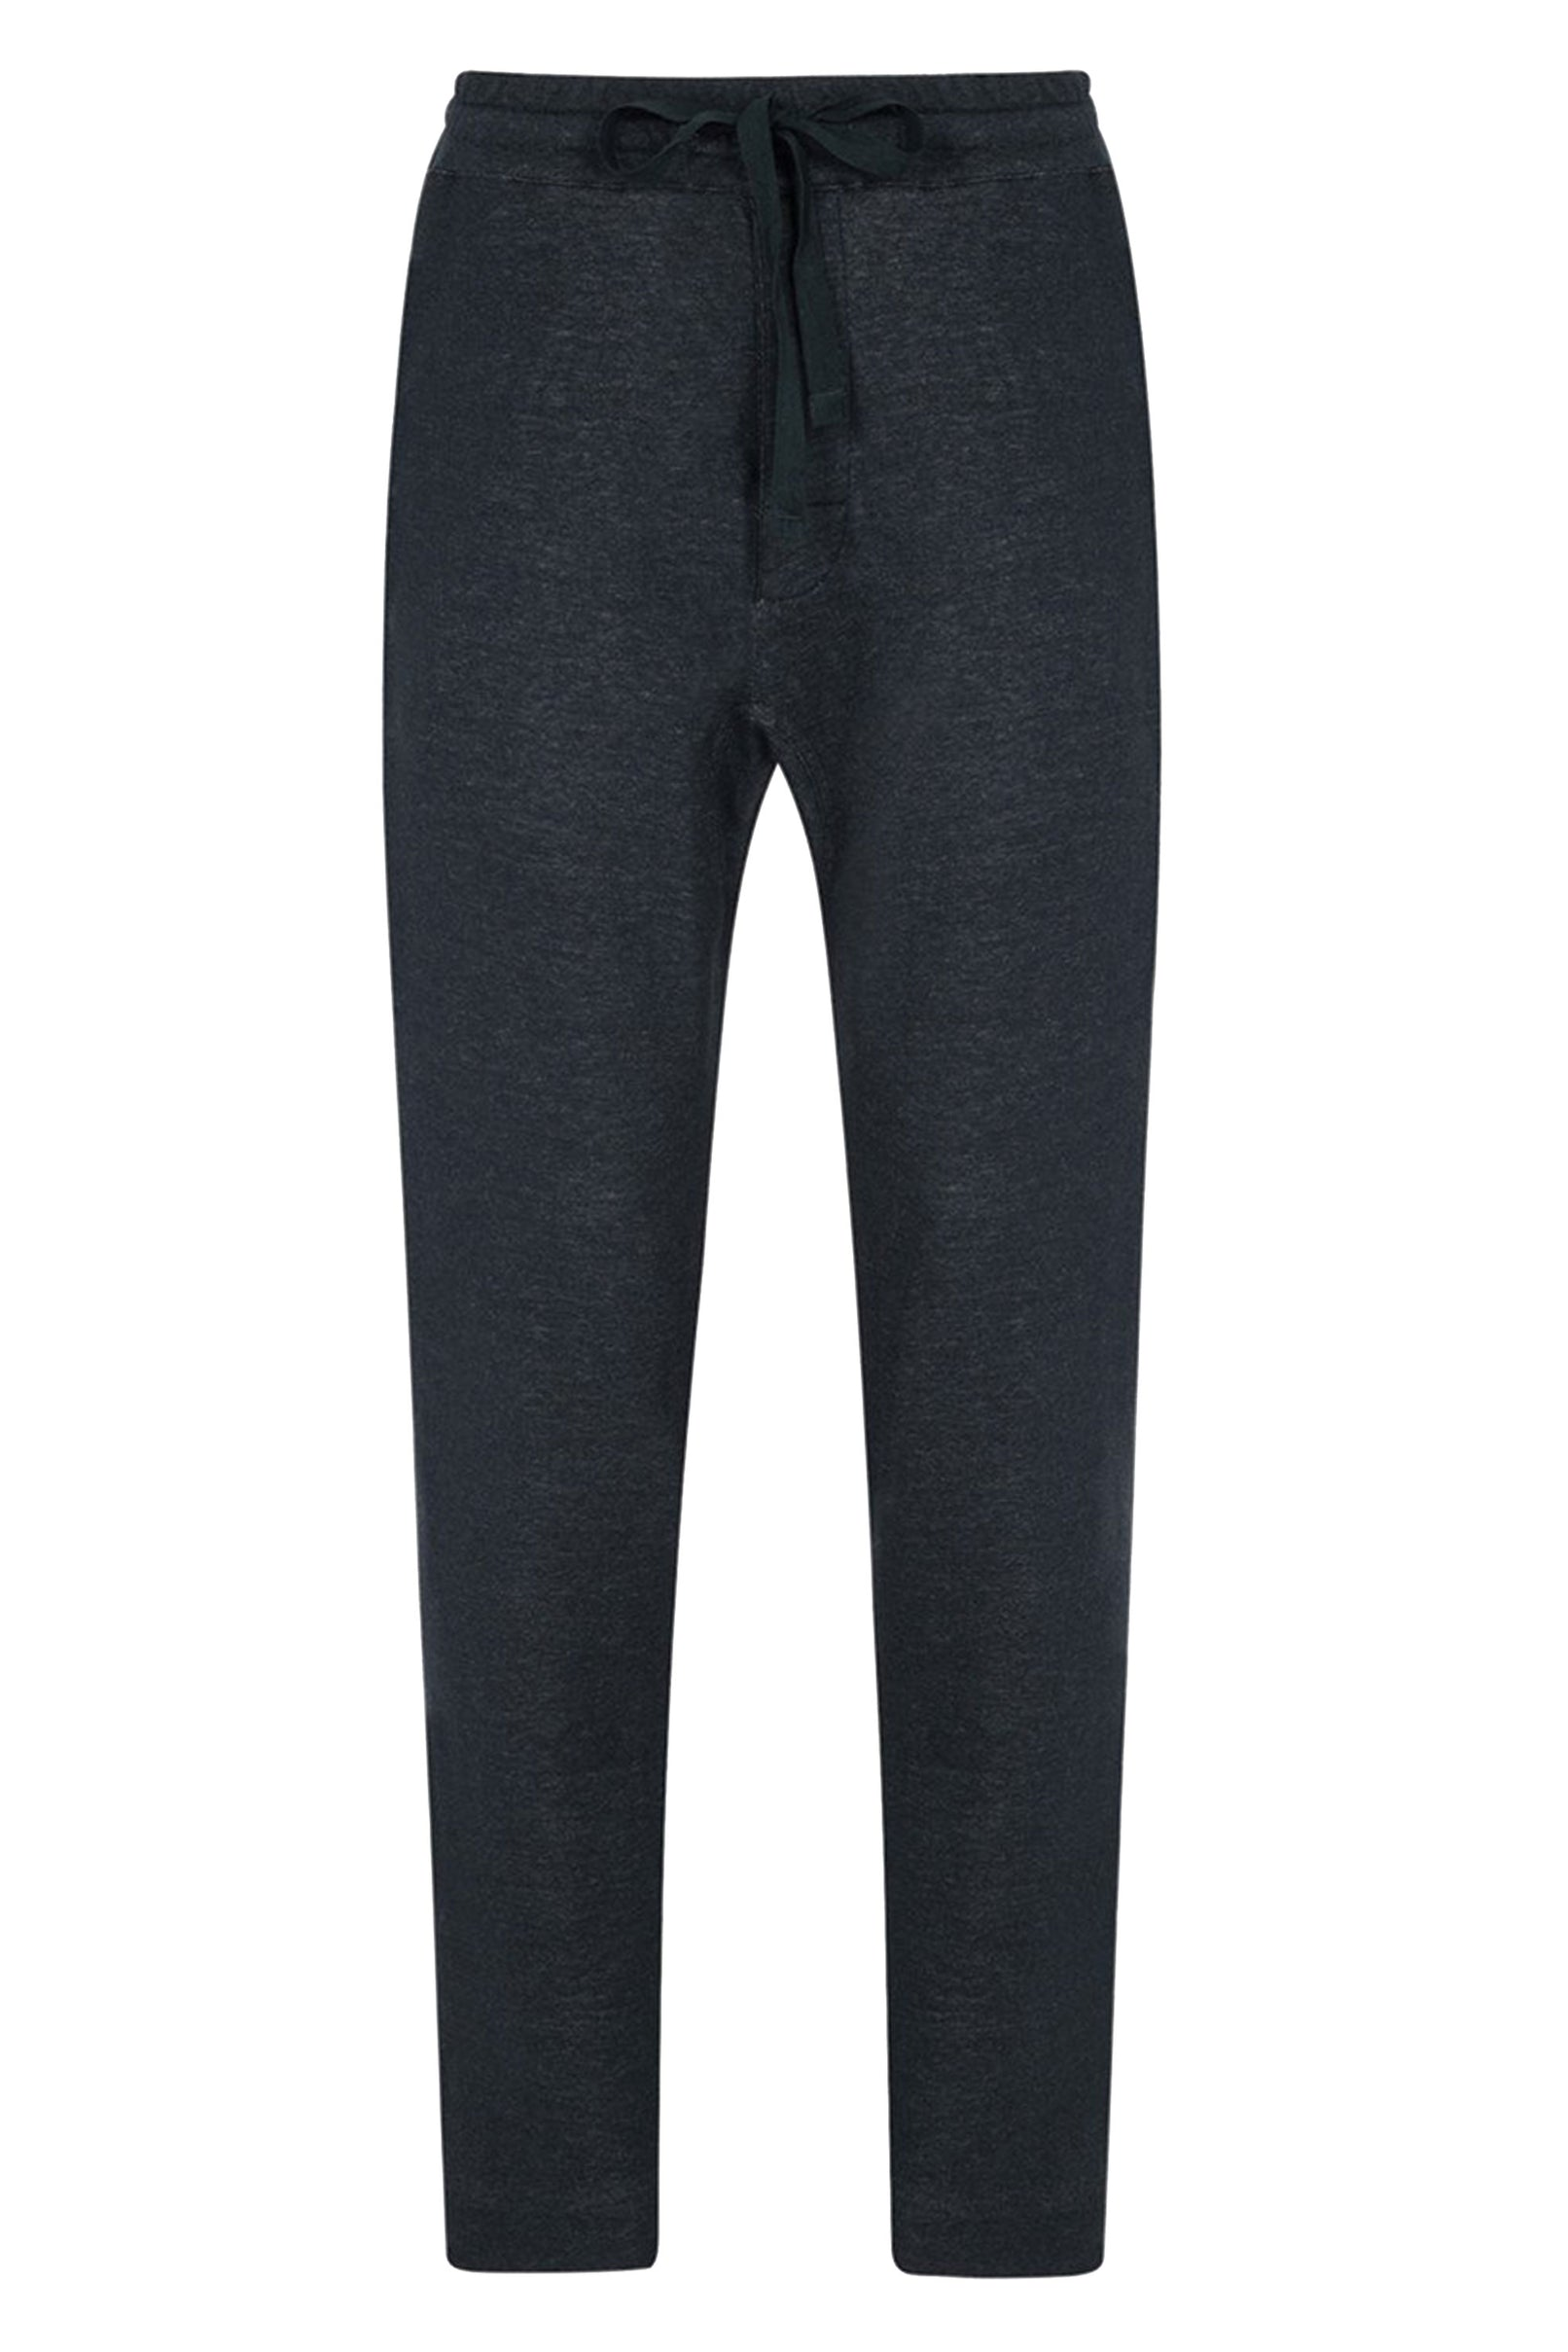 Navy Fine Wool Blend Lounge Pant